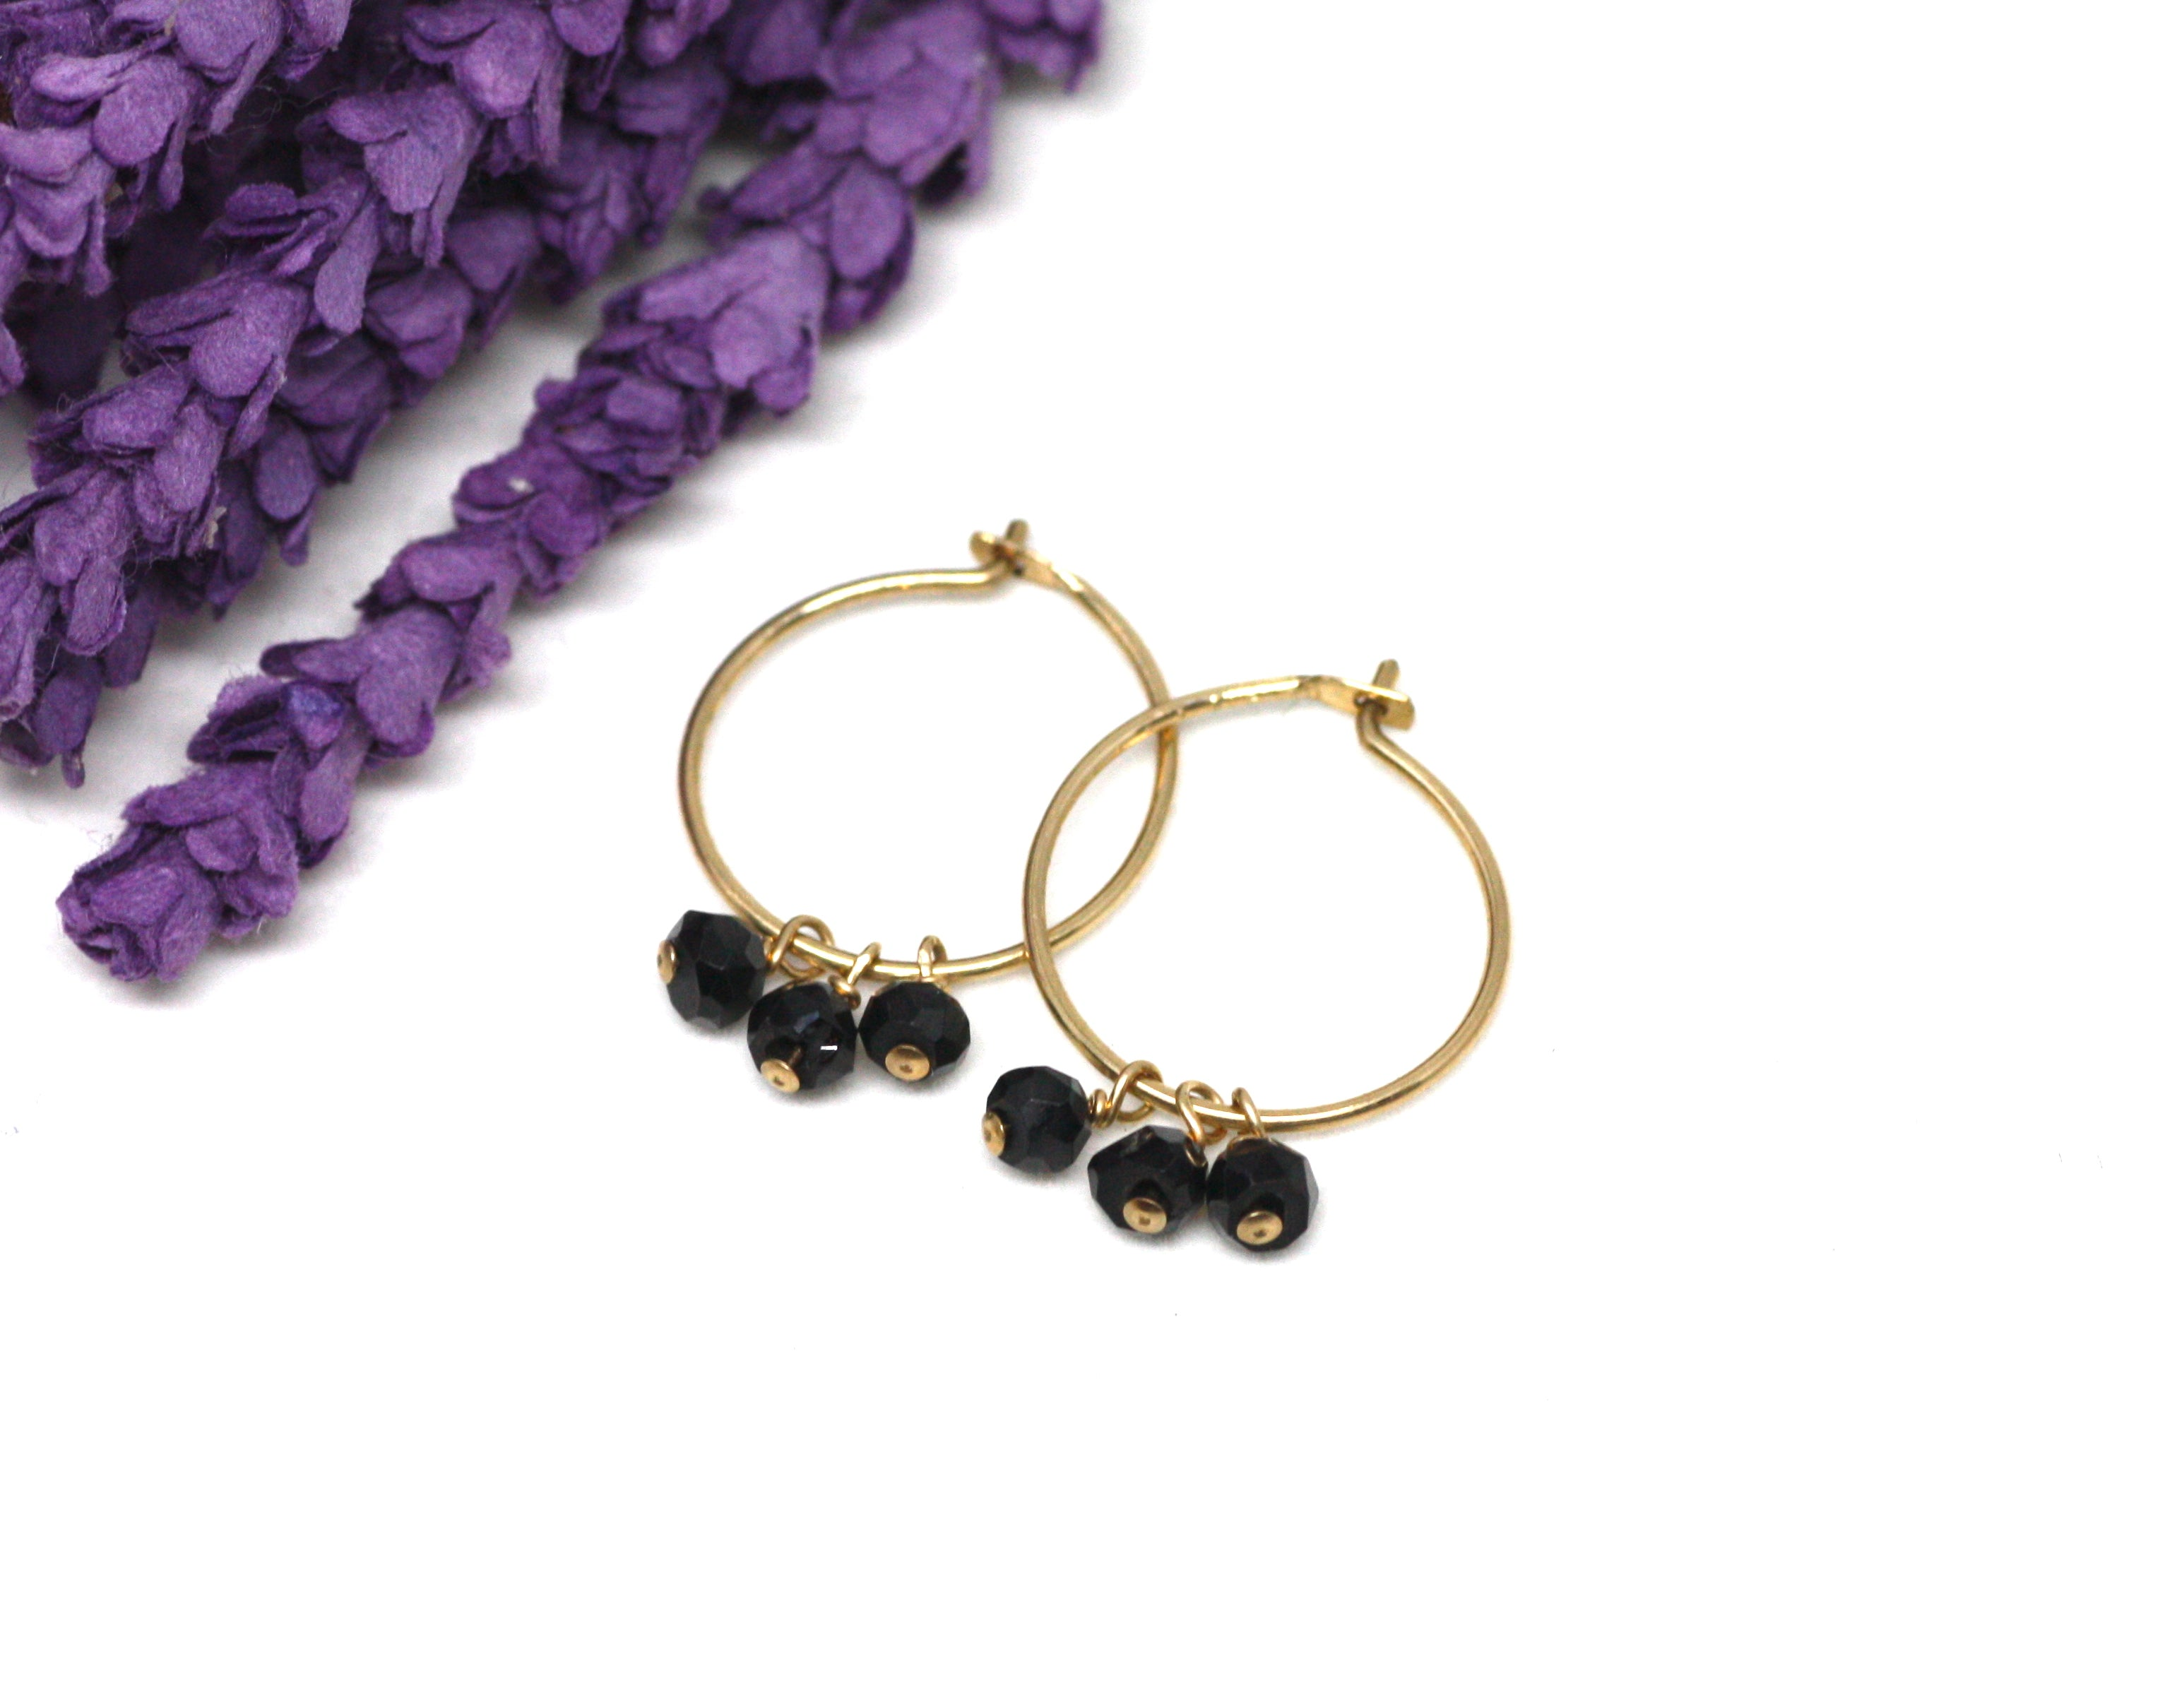 Black Spinel Small Hoop Earrings in Gold